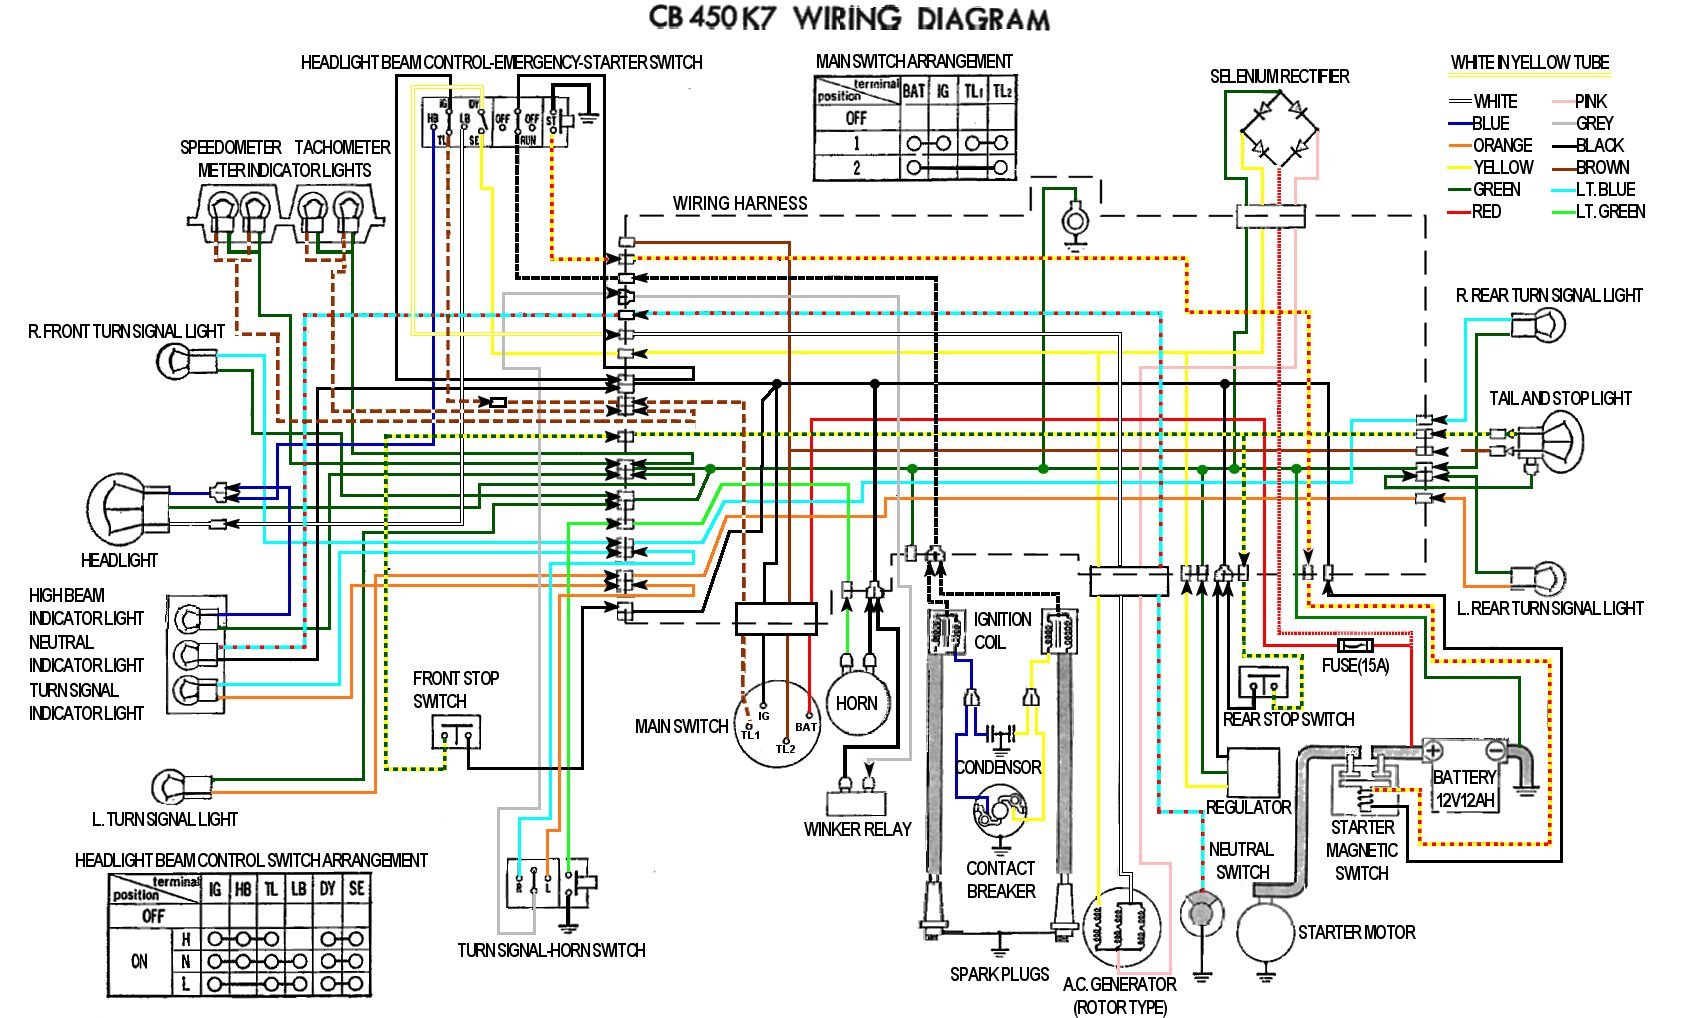 Diy Wiring Diagram Honda Download Diagrams Honda Wiring Diagrams Online Cb450sc Online Schematic U2022 Rh Holyoak Co